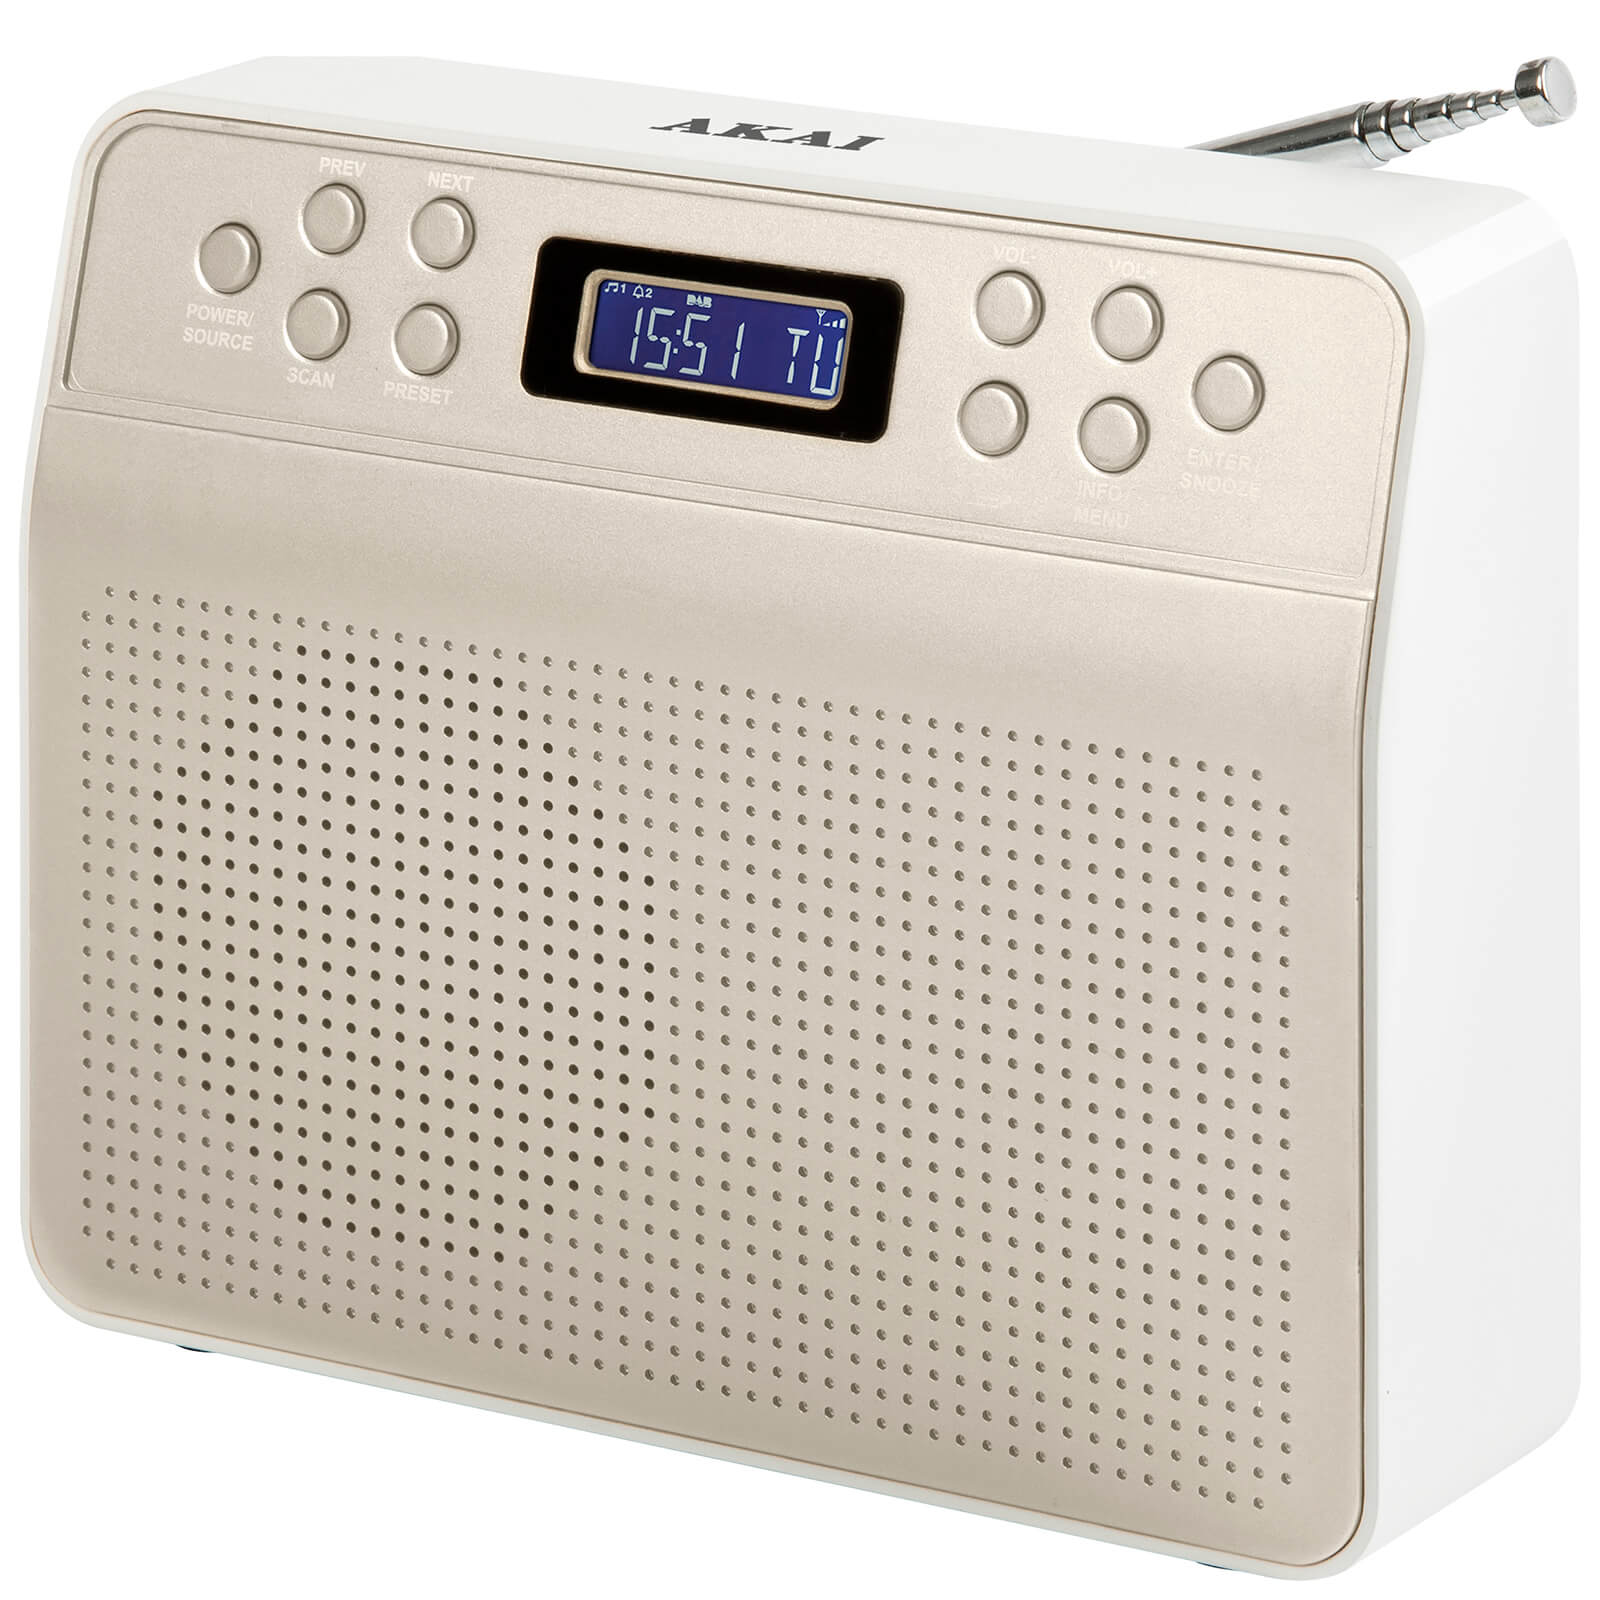 Akai DYNMX Portable DAB Radio with LCD Screen - Champagne